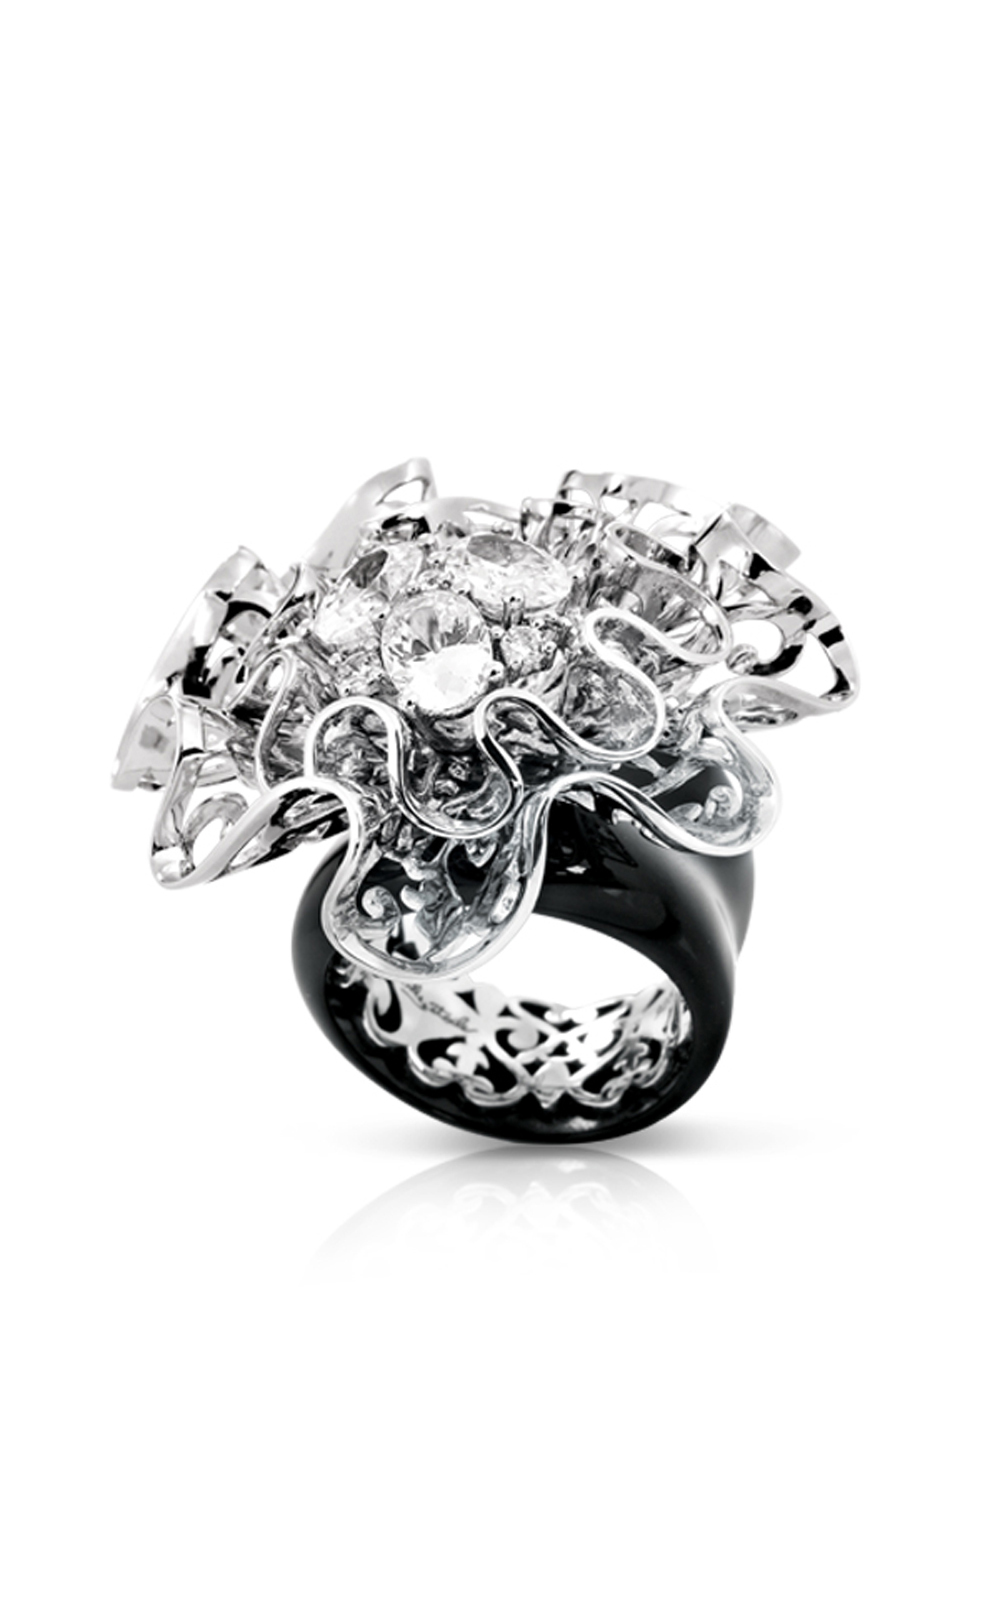 Belle Etoile Corsage Black Ring 01061010301-9 product image